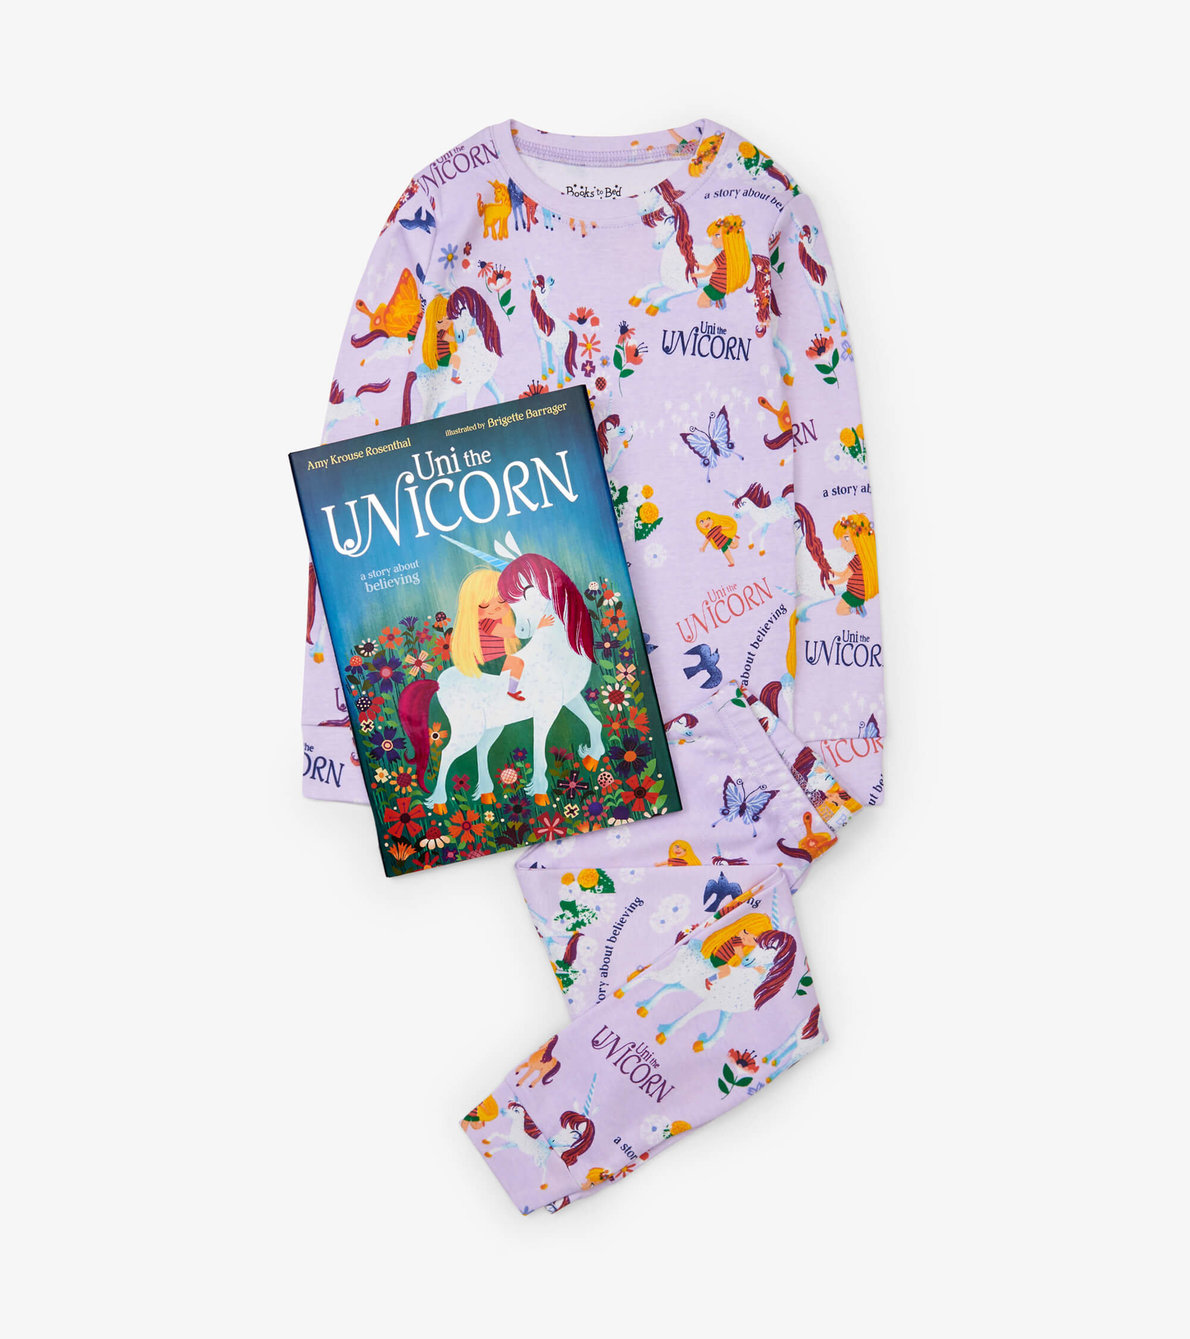 View larger image of Uni the Unicorn Book and Pajama Set